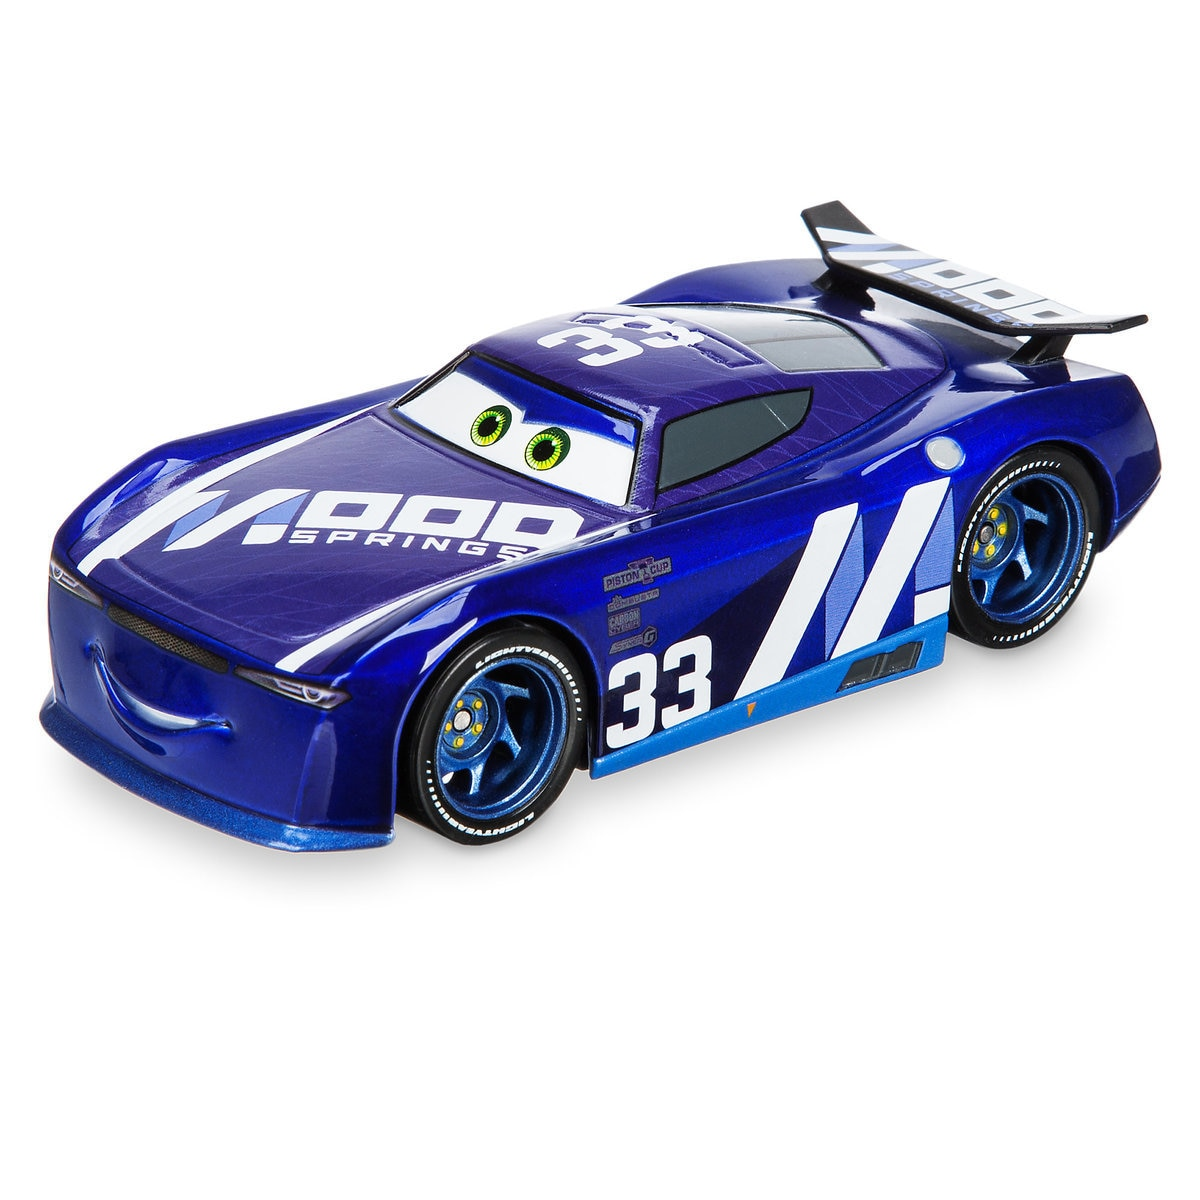 Ed Truncan Die Cast Car - Cars 3 - Chaser Series - Limited Release ...